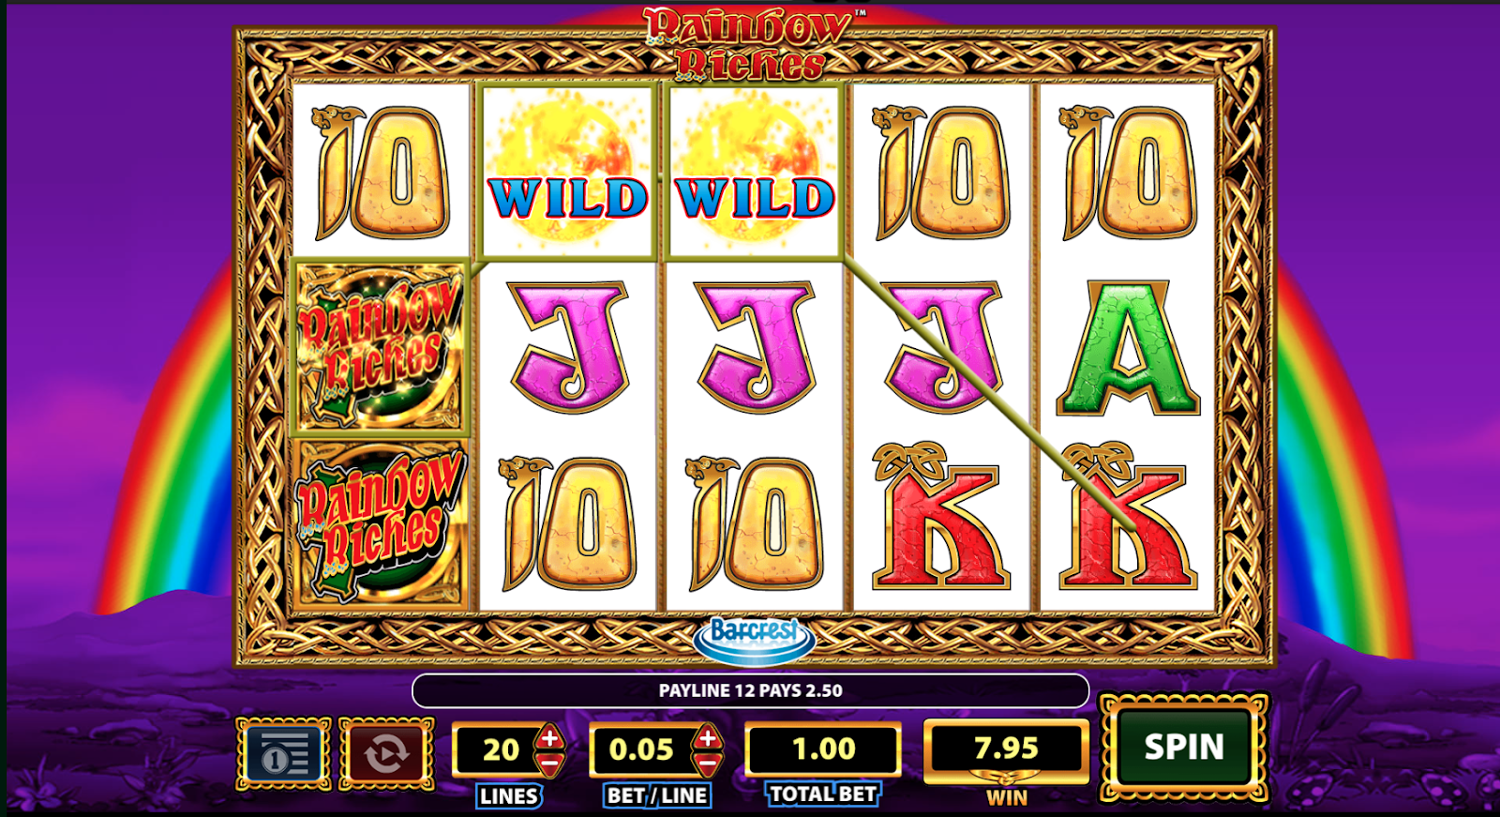 Rainbow Riches win with Wilds